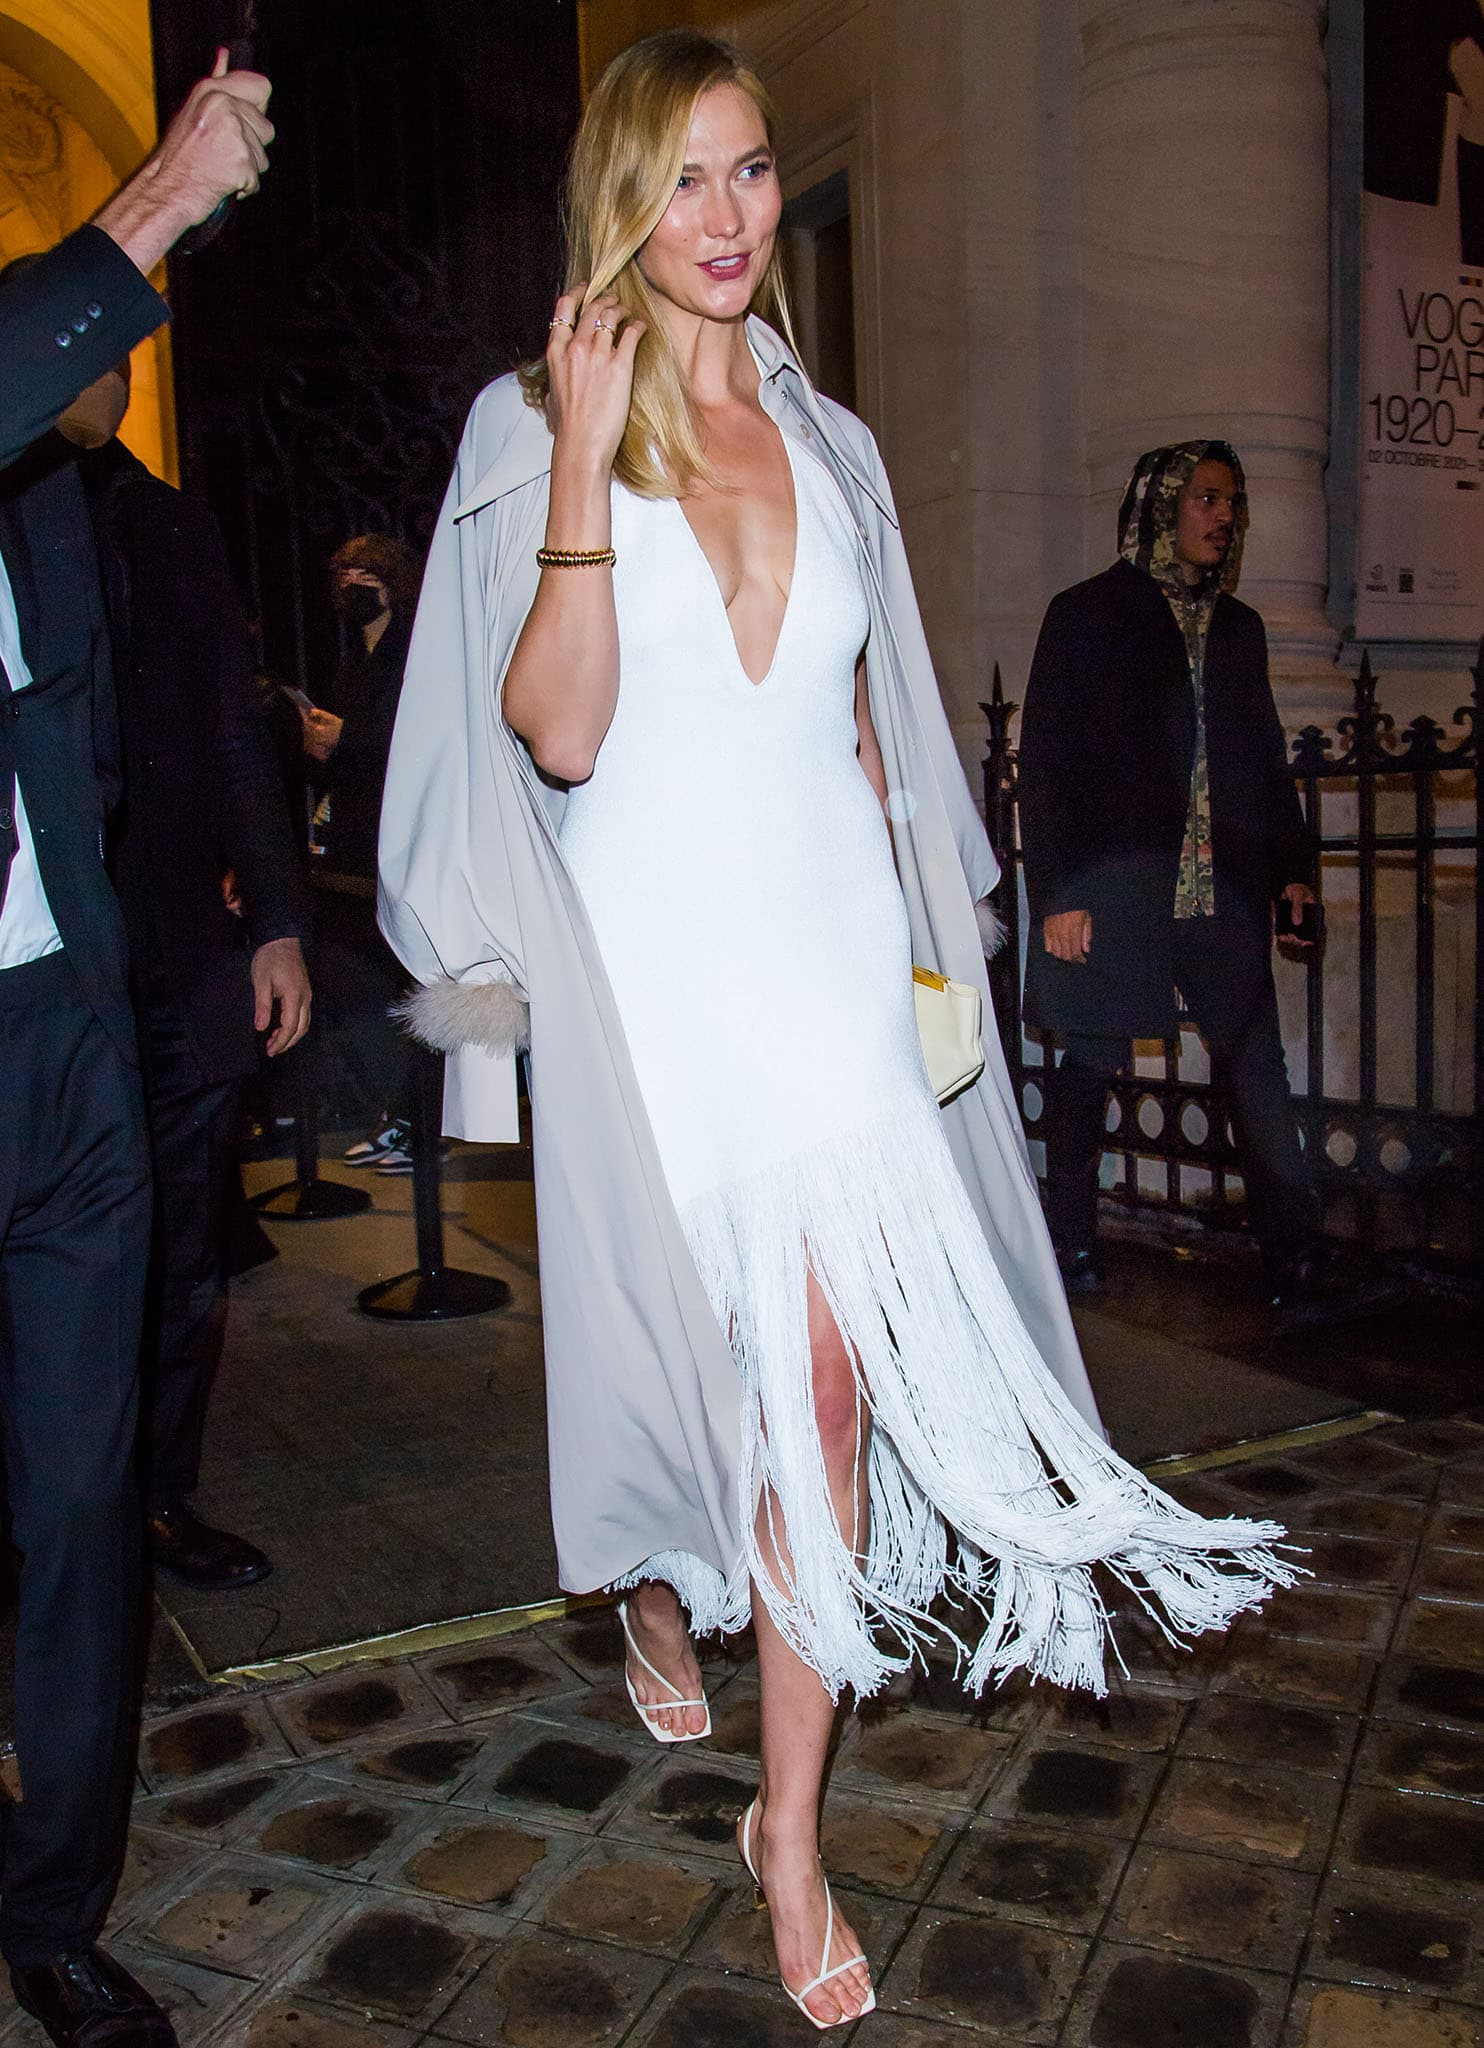 Karlie Kloss highlights her cleavage at the Vogue Paris 100th Anniversary exhibition party